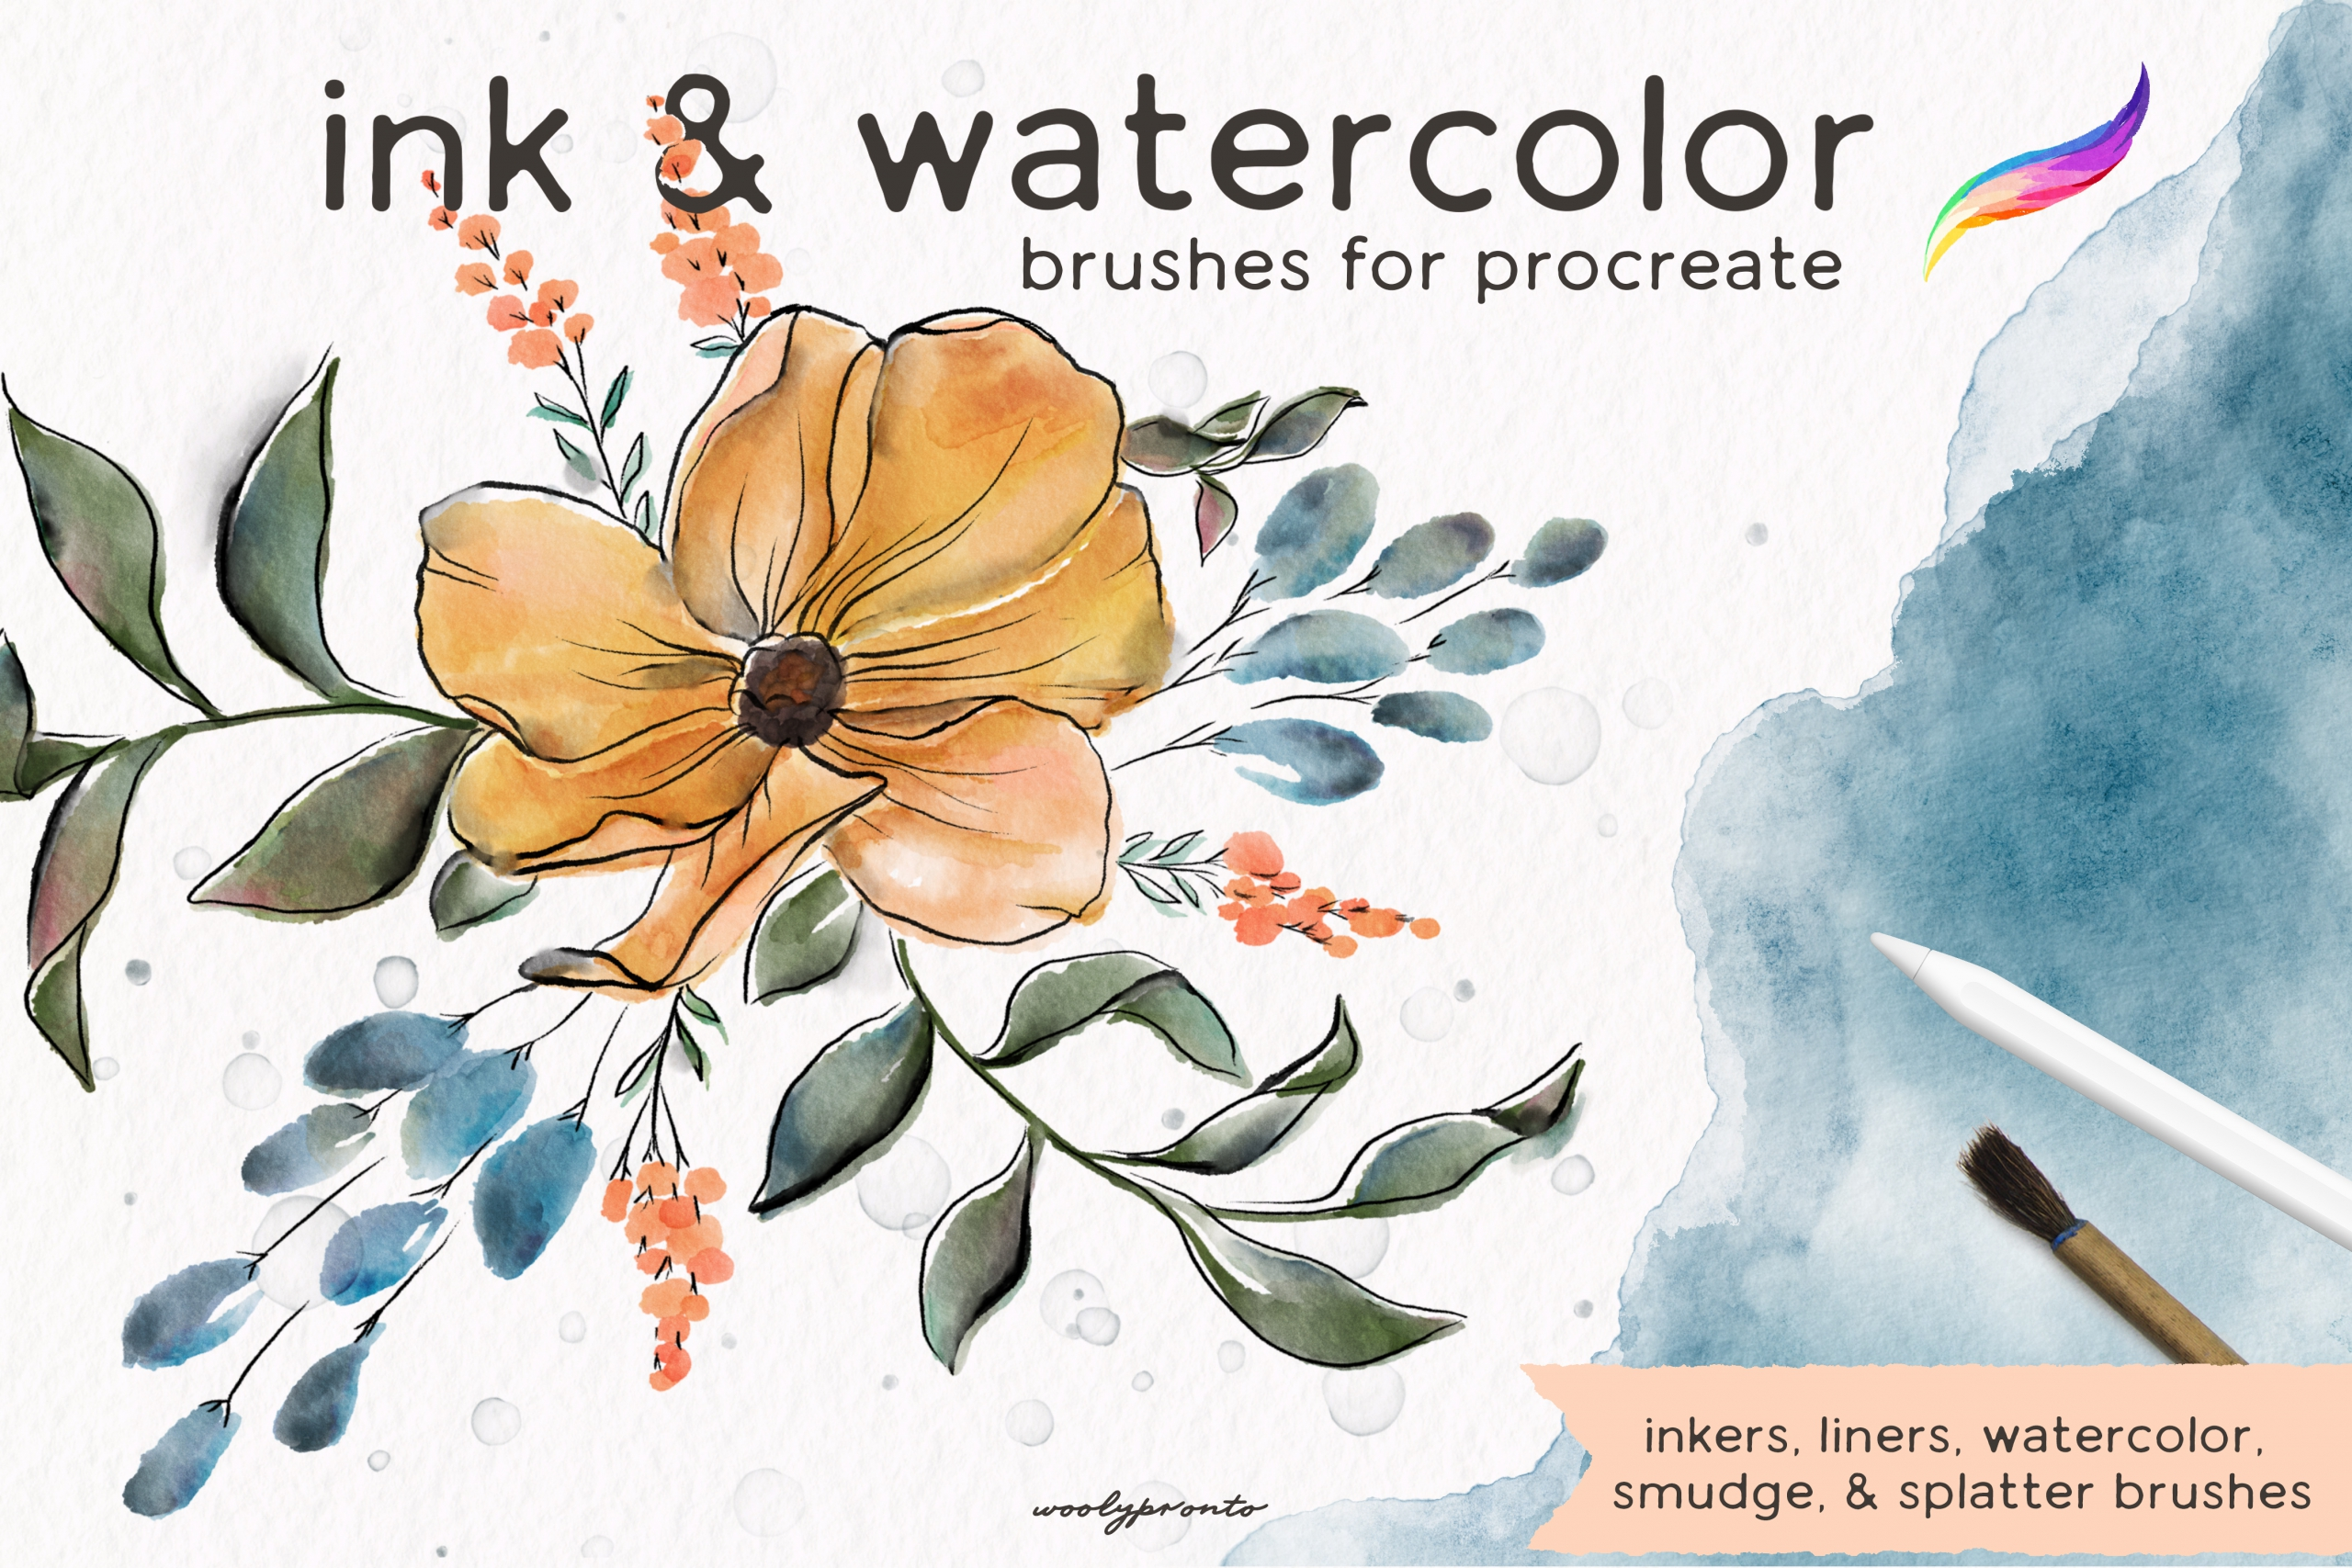 Ink & Watercolor Brushes for Procreate